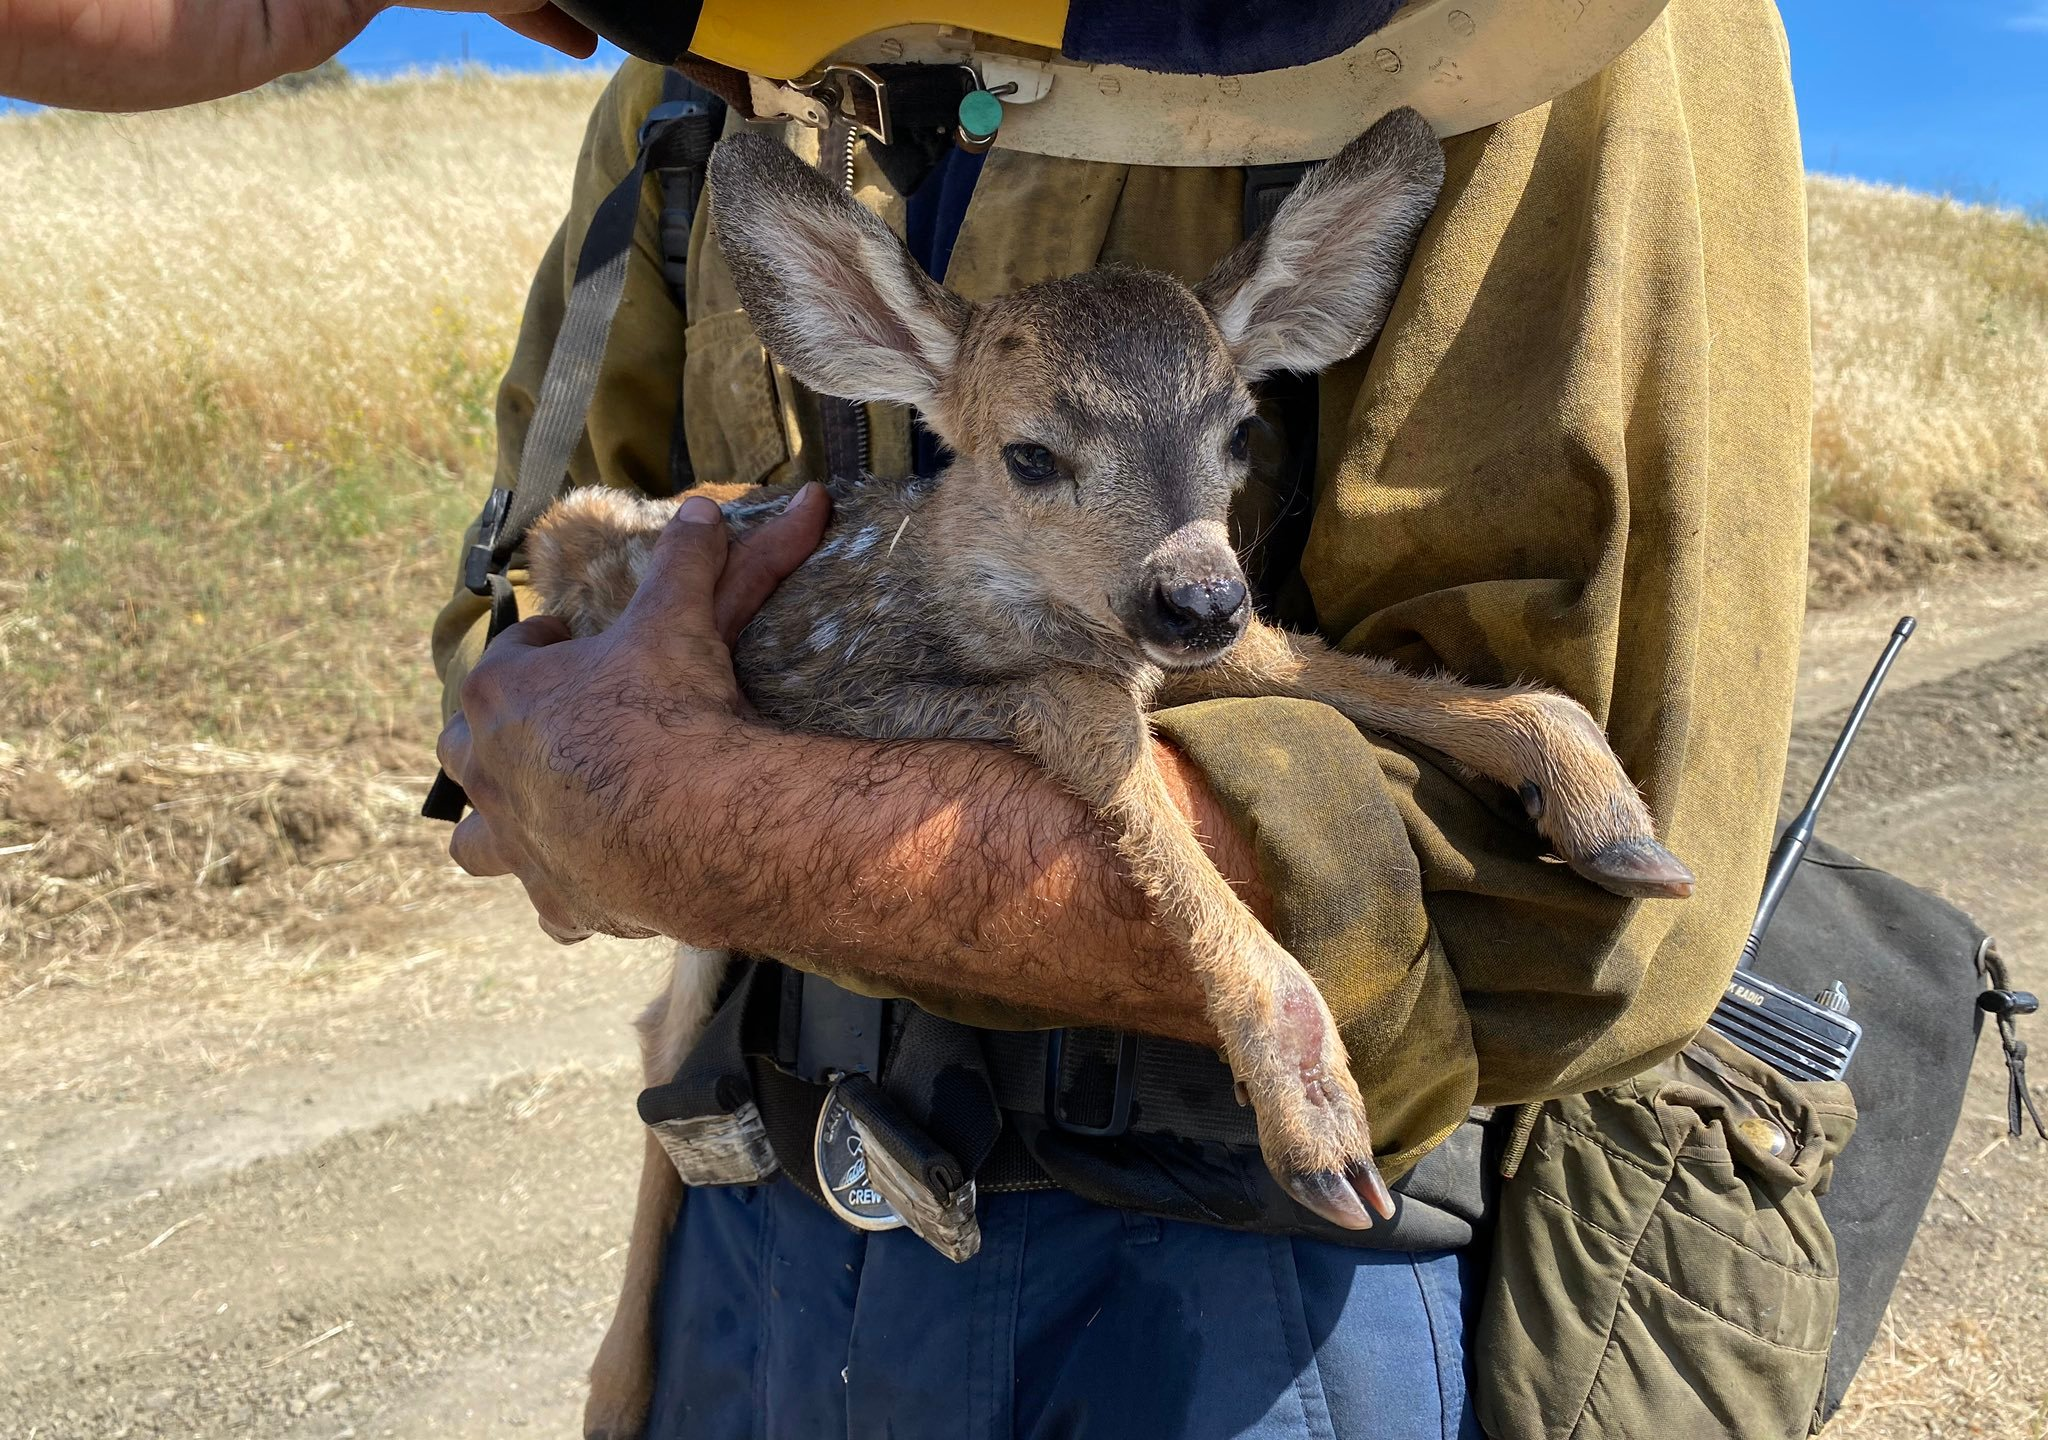 A firefighter rescues a fawn during a brush fire in Hollister Ranch on May 7, 2020. (Daniel Bertucelli / Santa Barbara County Fire Department)